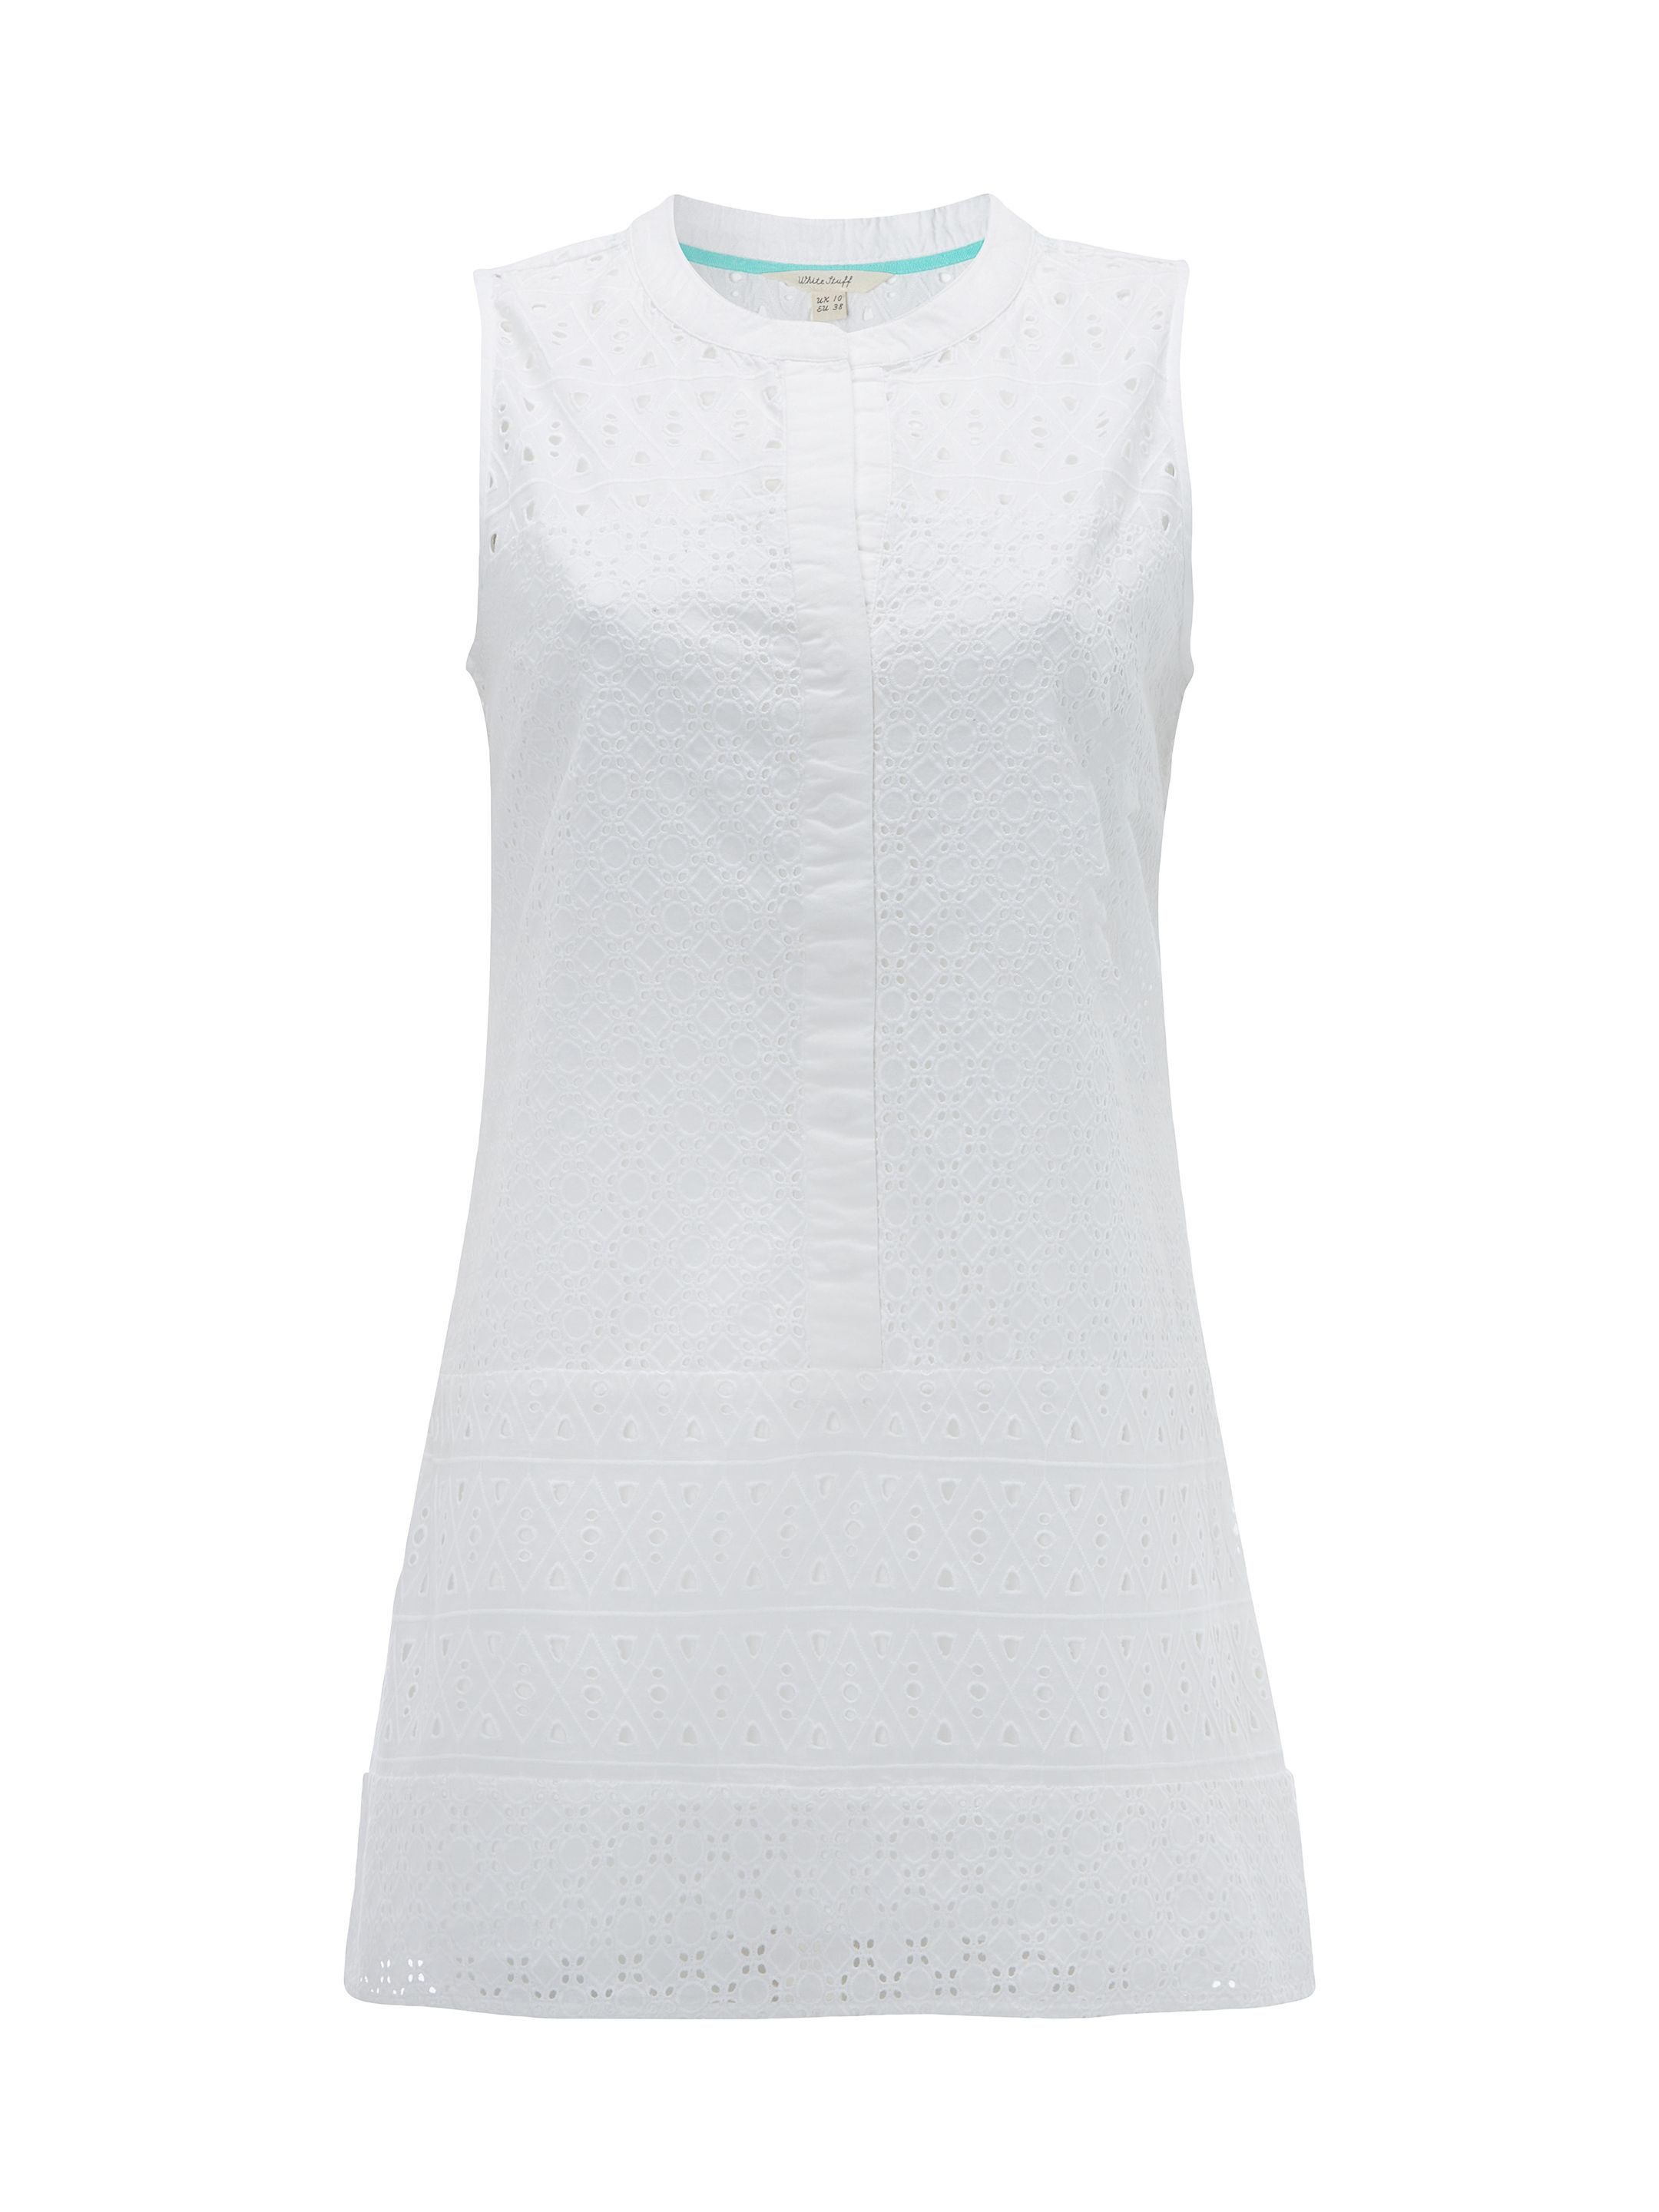 White Stuff Fern Shirt Tunic, White